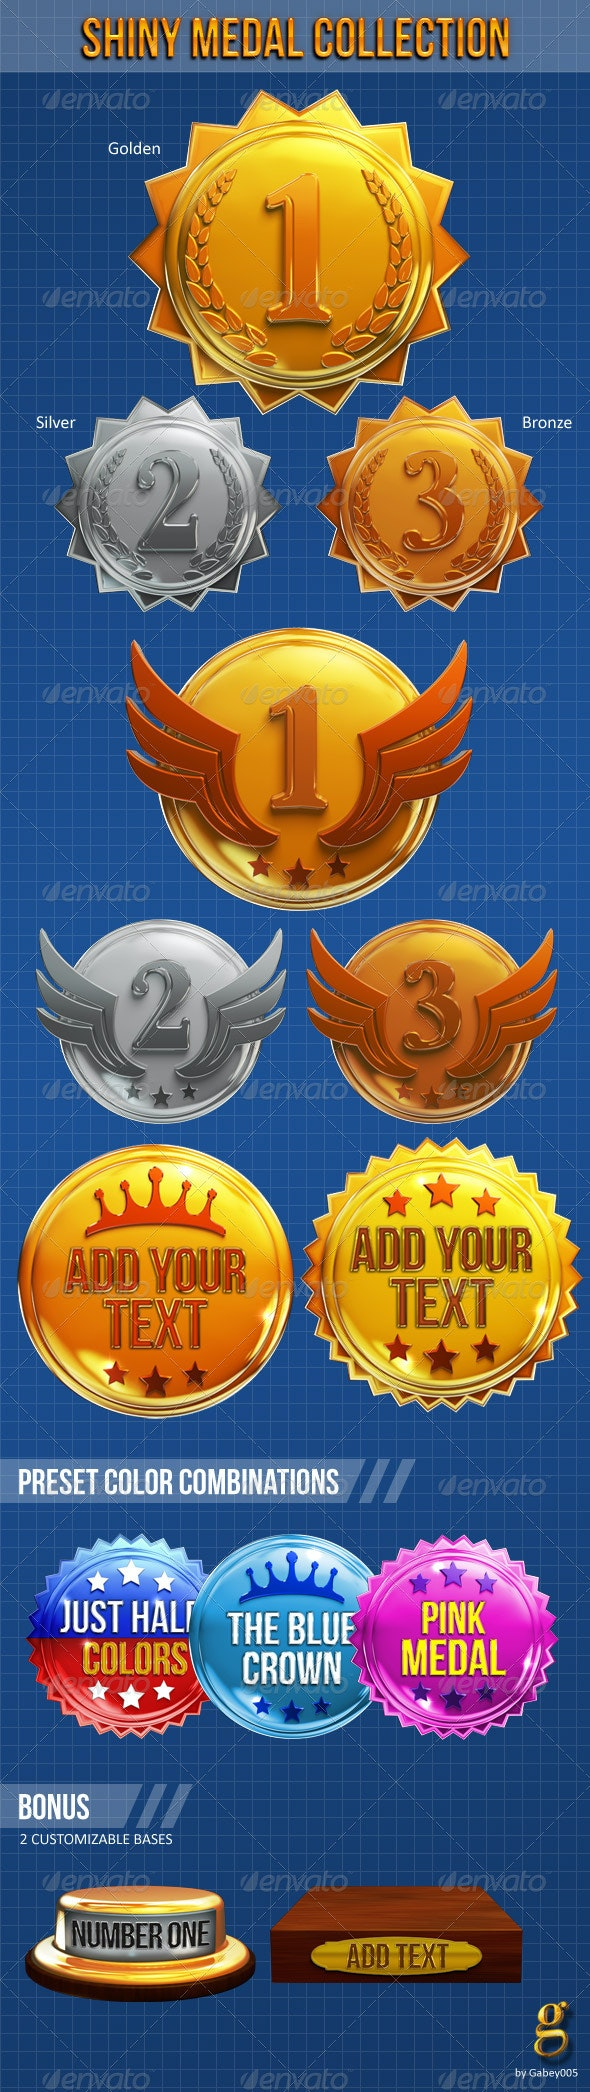 Shiny Medal Collection - Objects 3D Renders